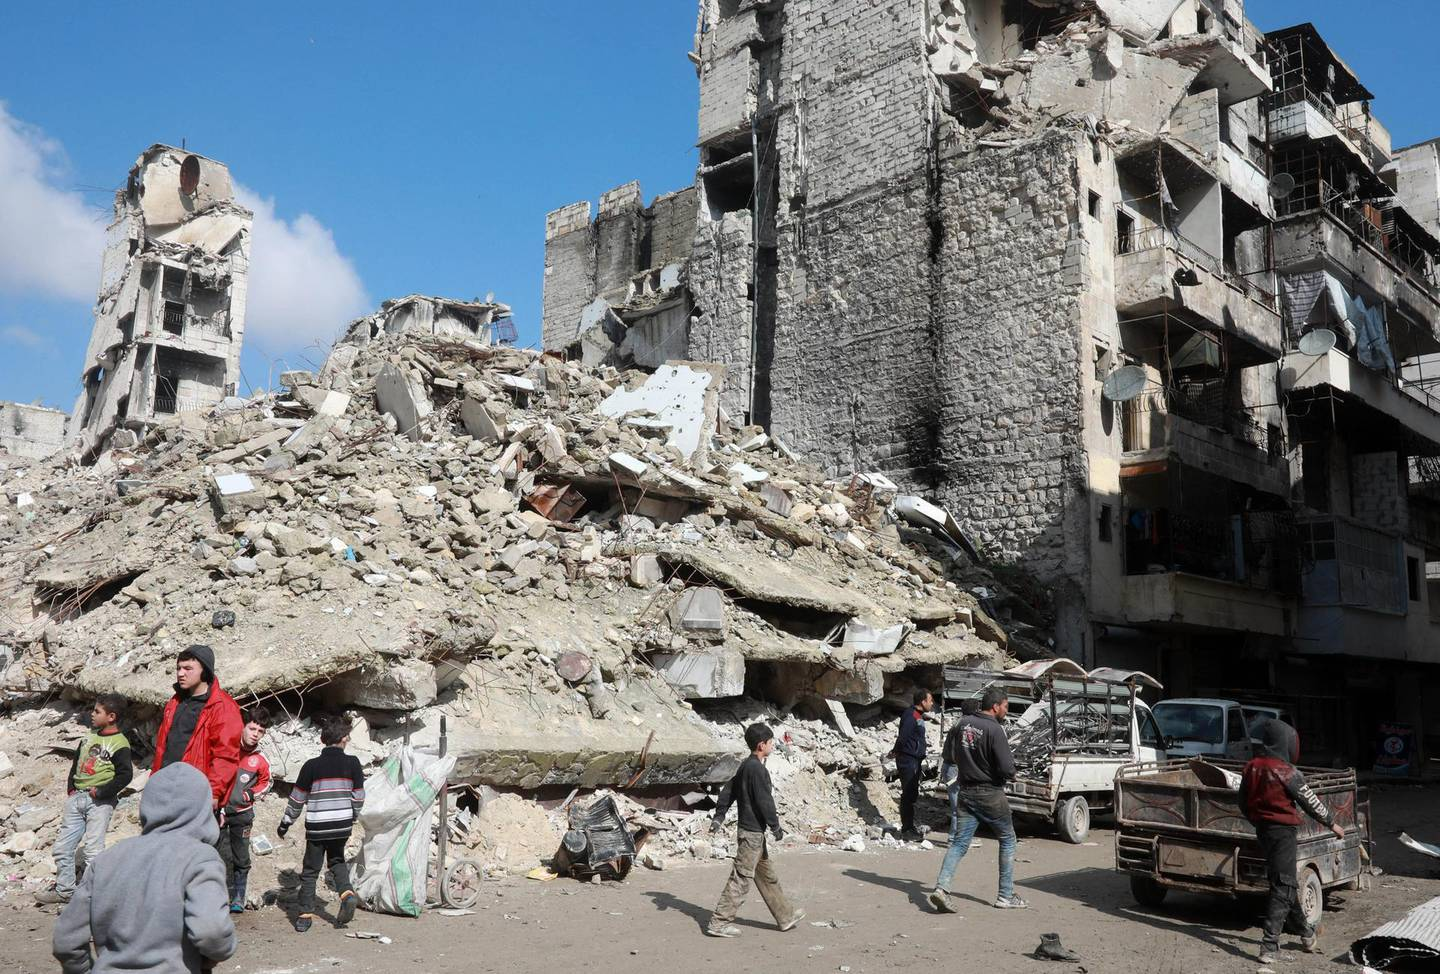 People walk past the rubble of buildings that were heavily damaged or destroyed during battles between rebel fighters and regime forces, in the former opposition-held district of Salaheddin in the northern Syrian city of Aleppo on February 11, 2019. (Photo by LOUAI BESHARA / AFP)